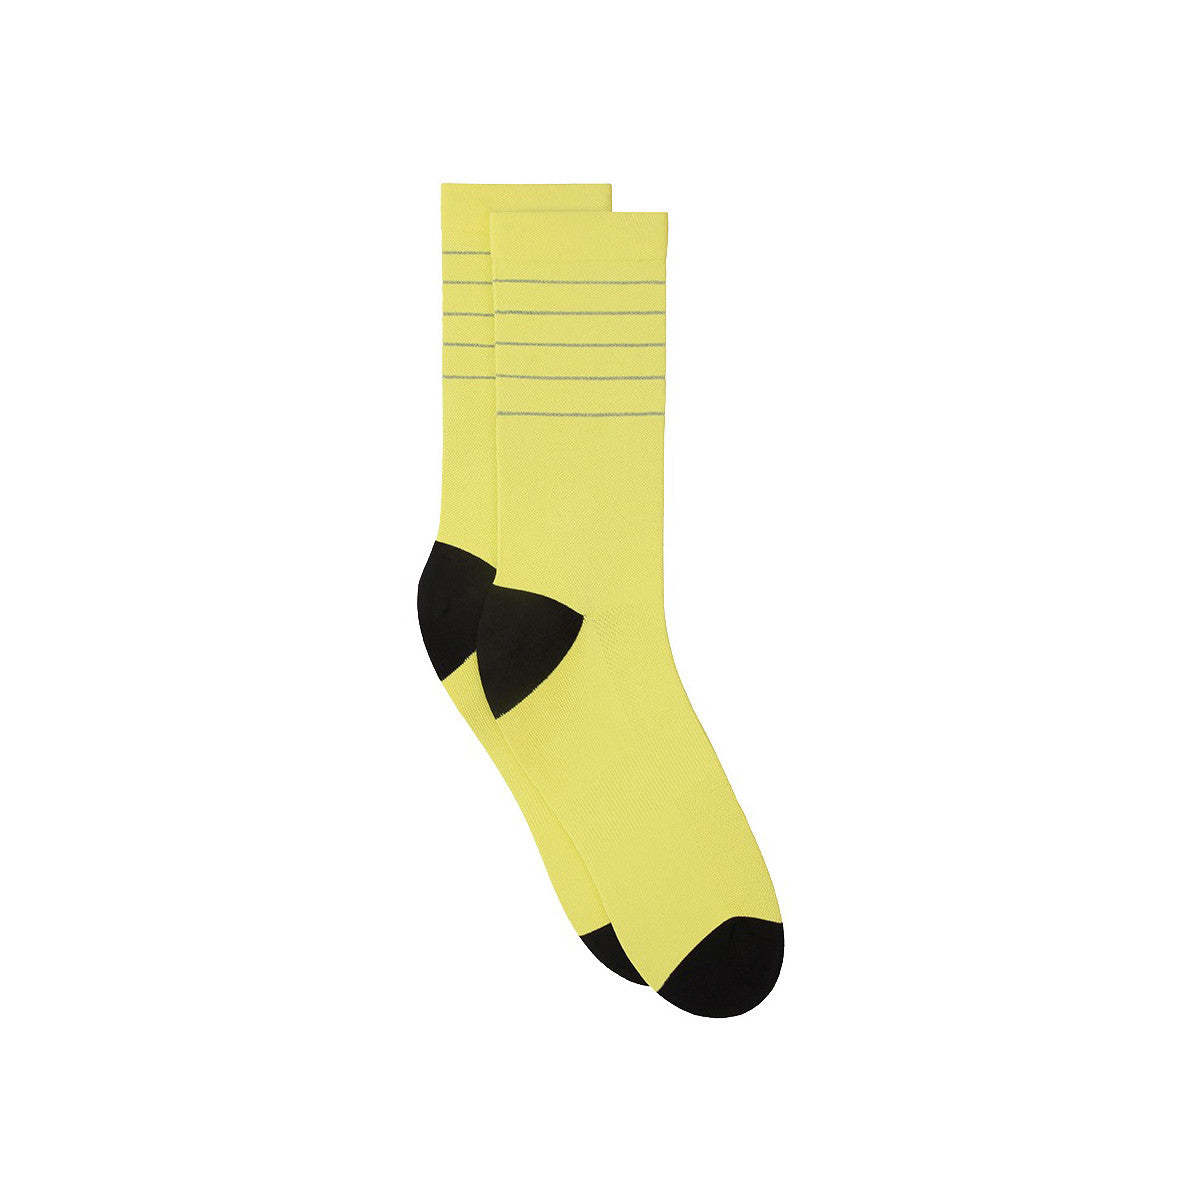 Reflective Glitter Socks - Buttercup / Black